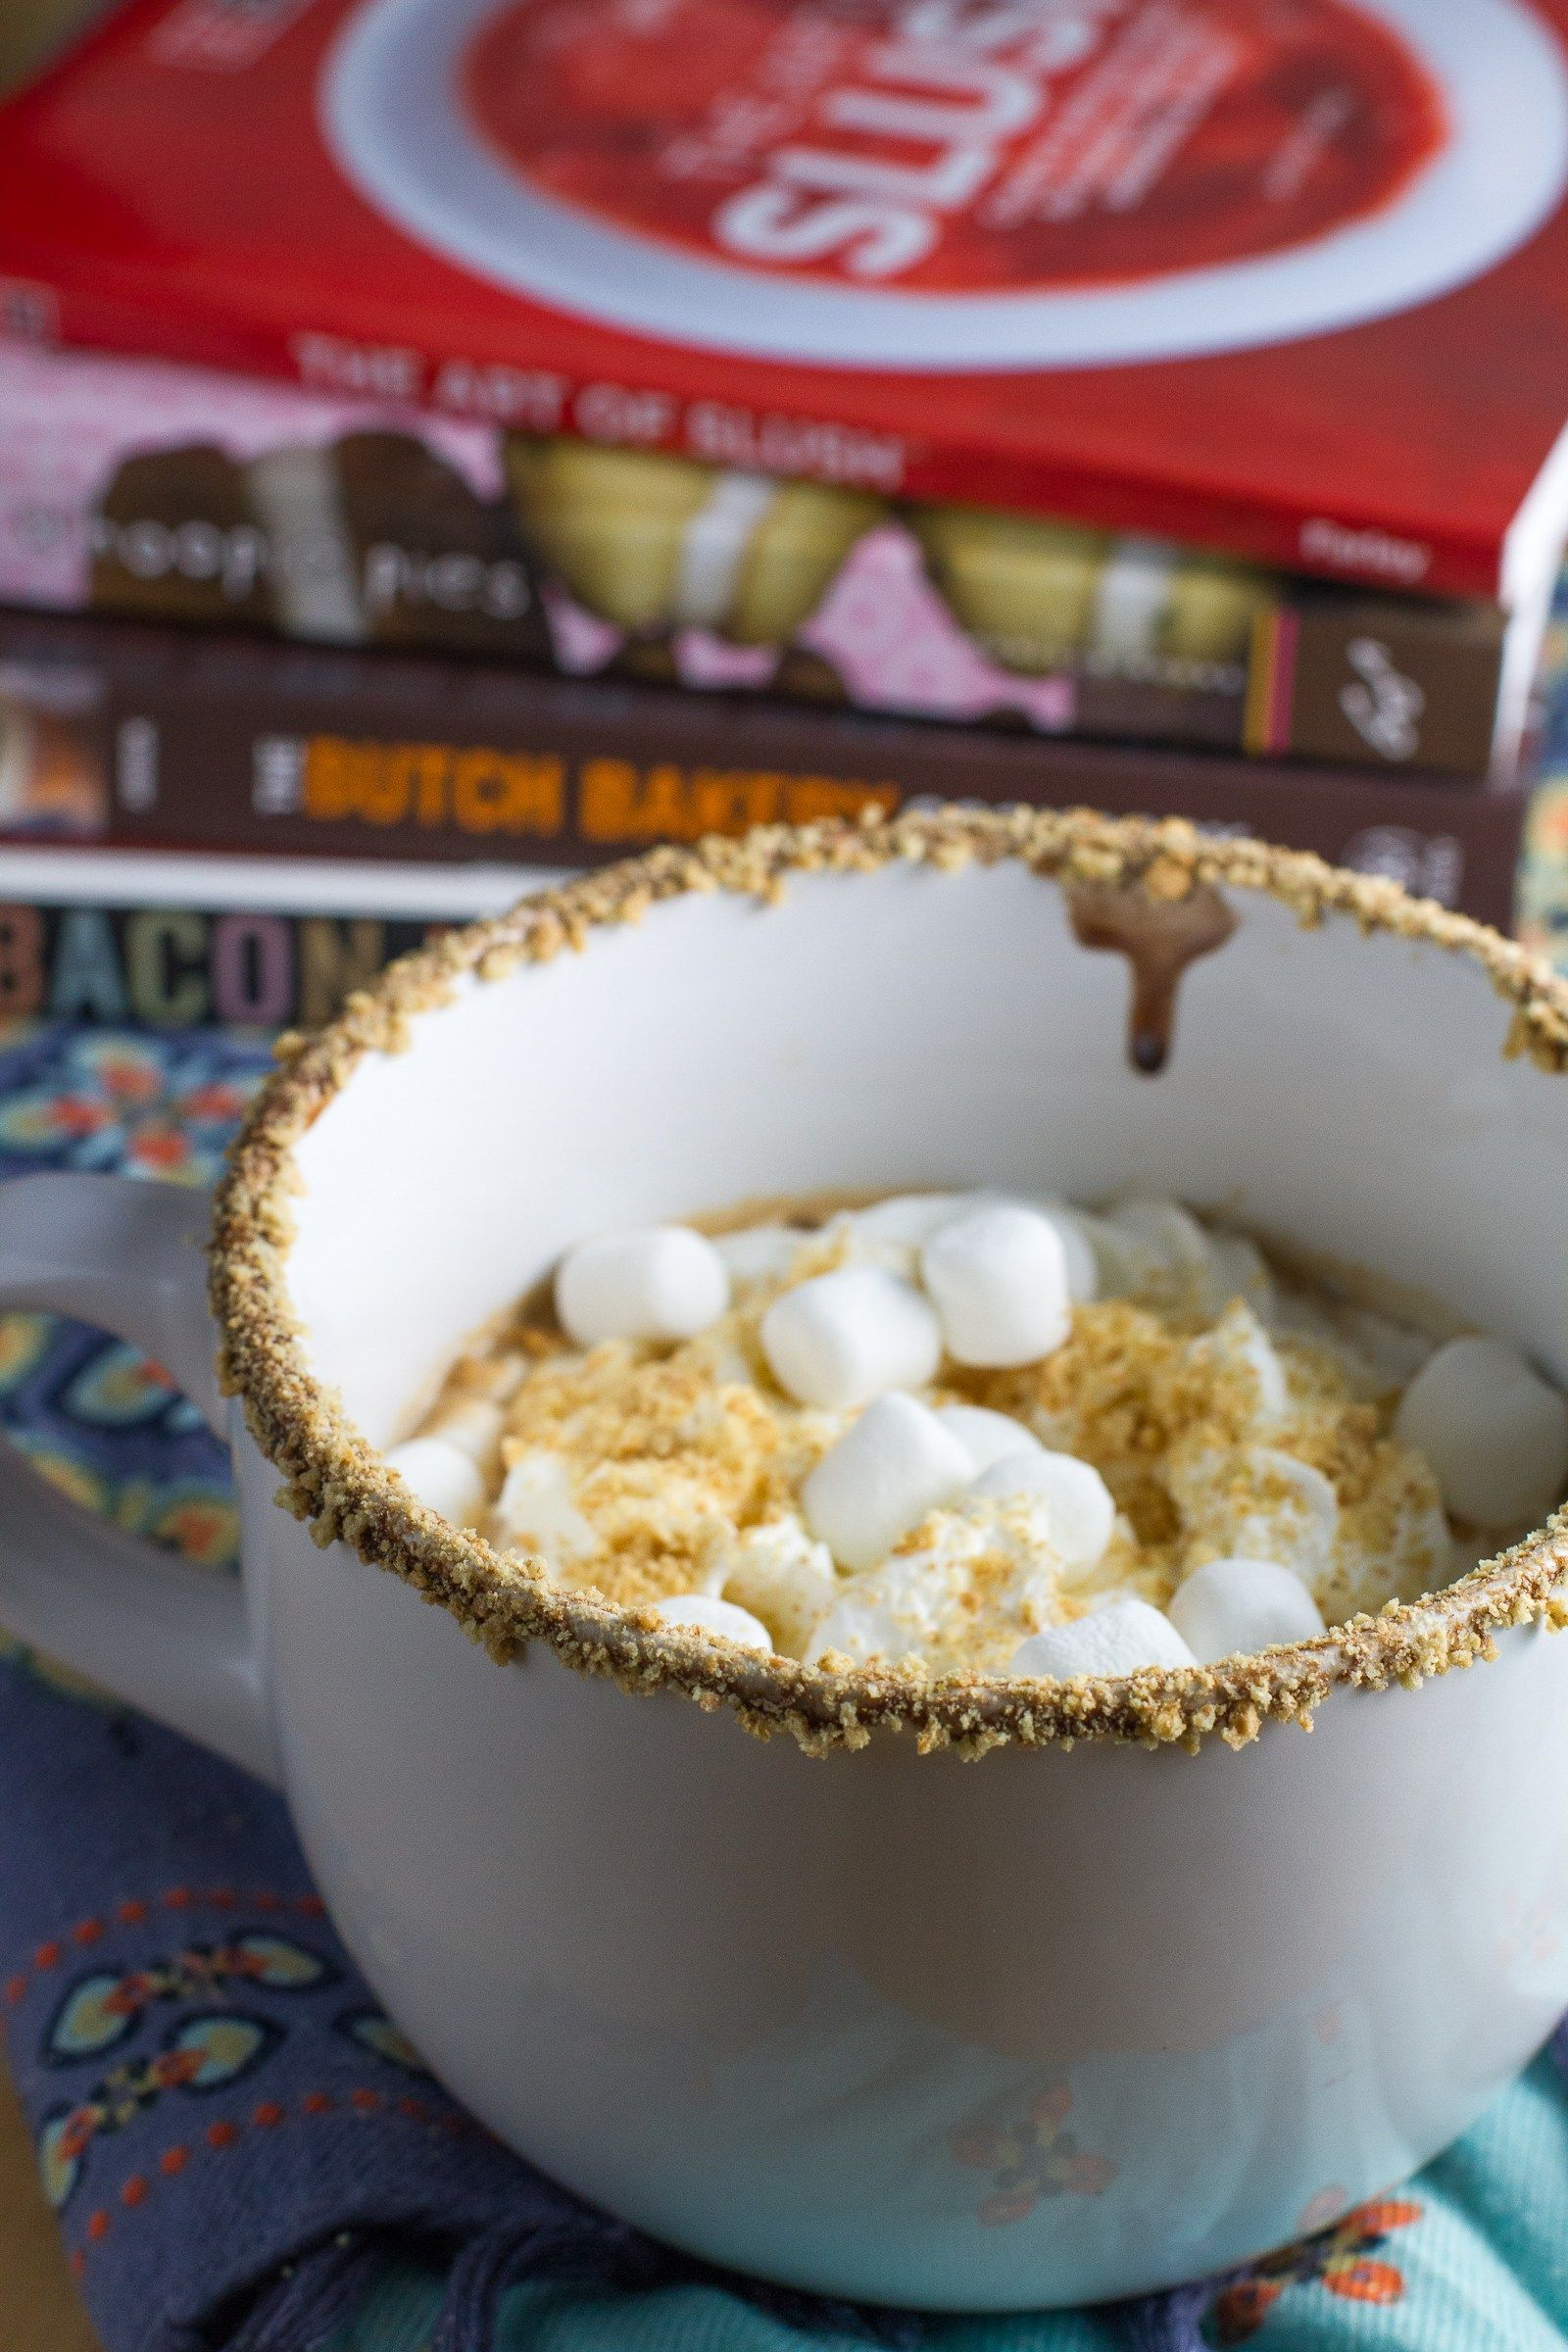 S'Mores Latte and Espresso at Home - Poet in the Pantry